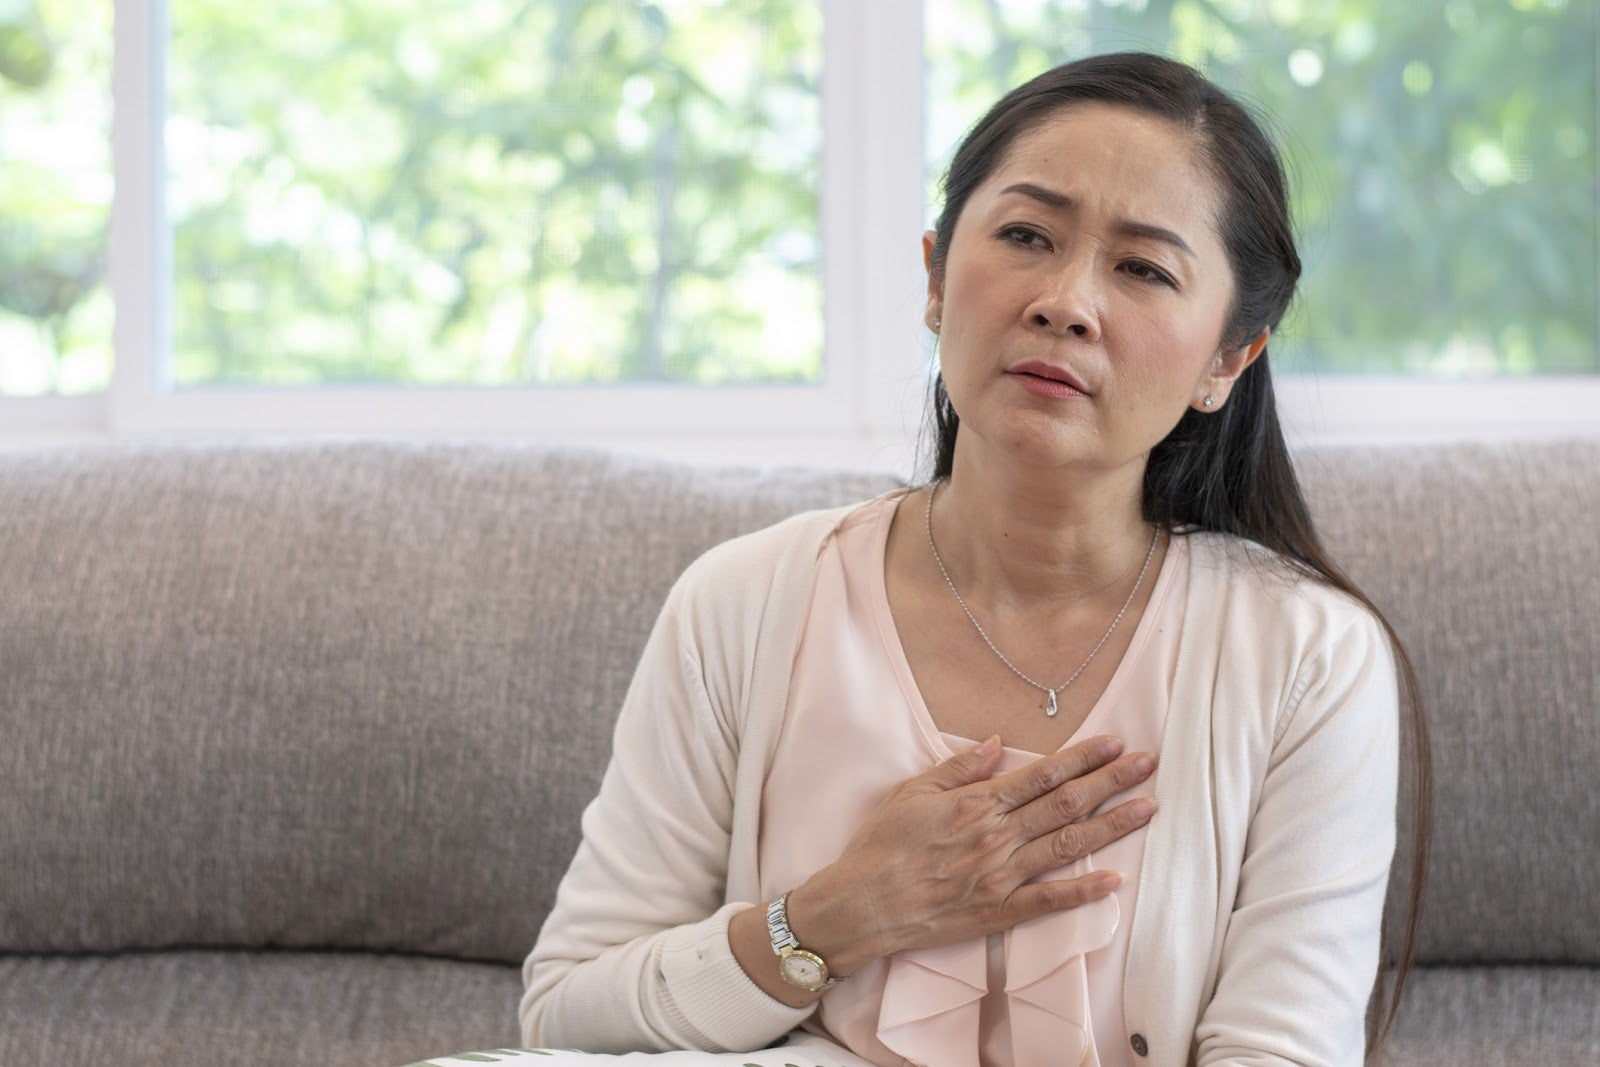 These Simple Techniques Can Mitigate Your Shortness of Breath and Improve Your Breathing